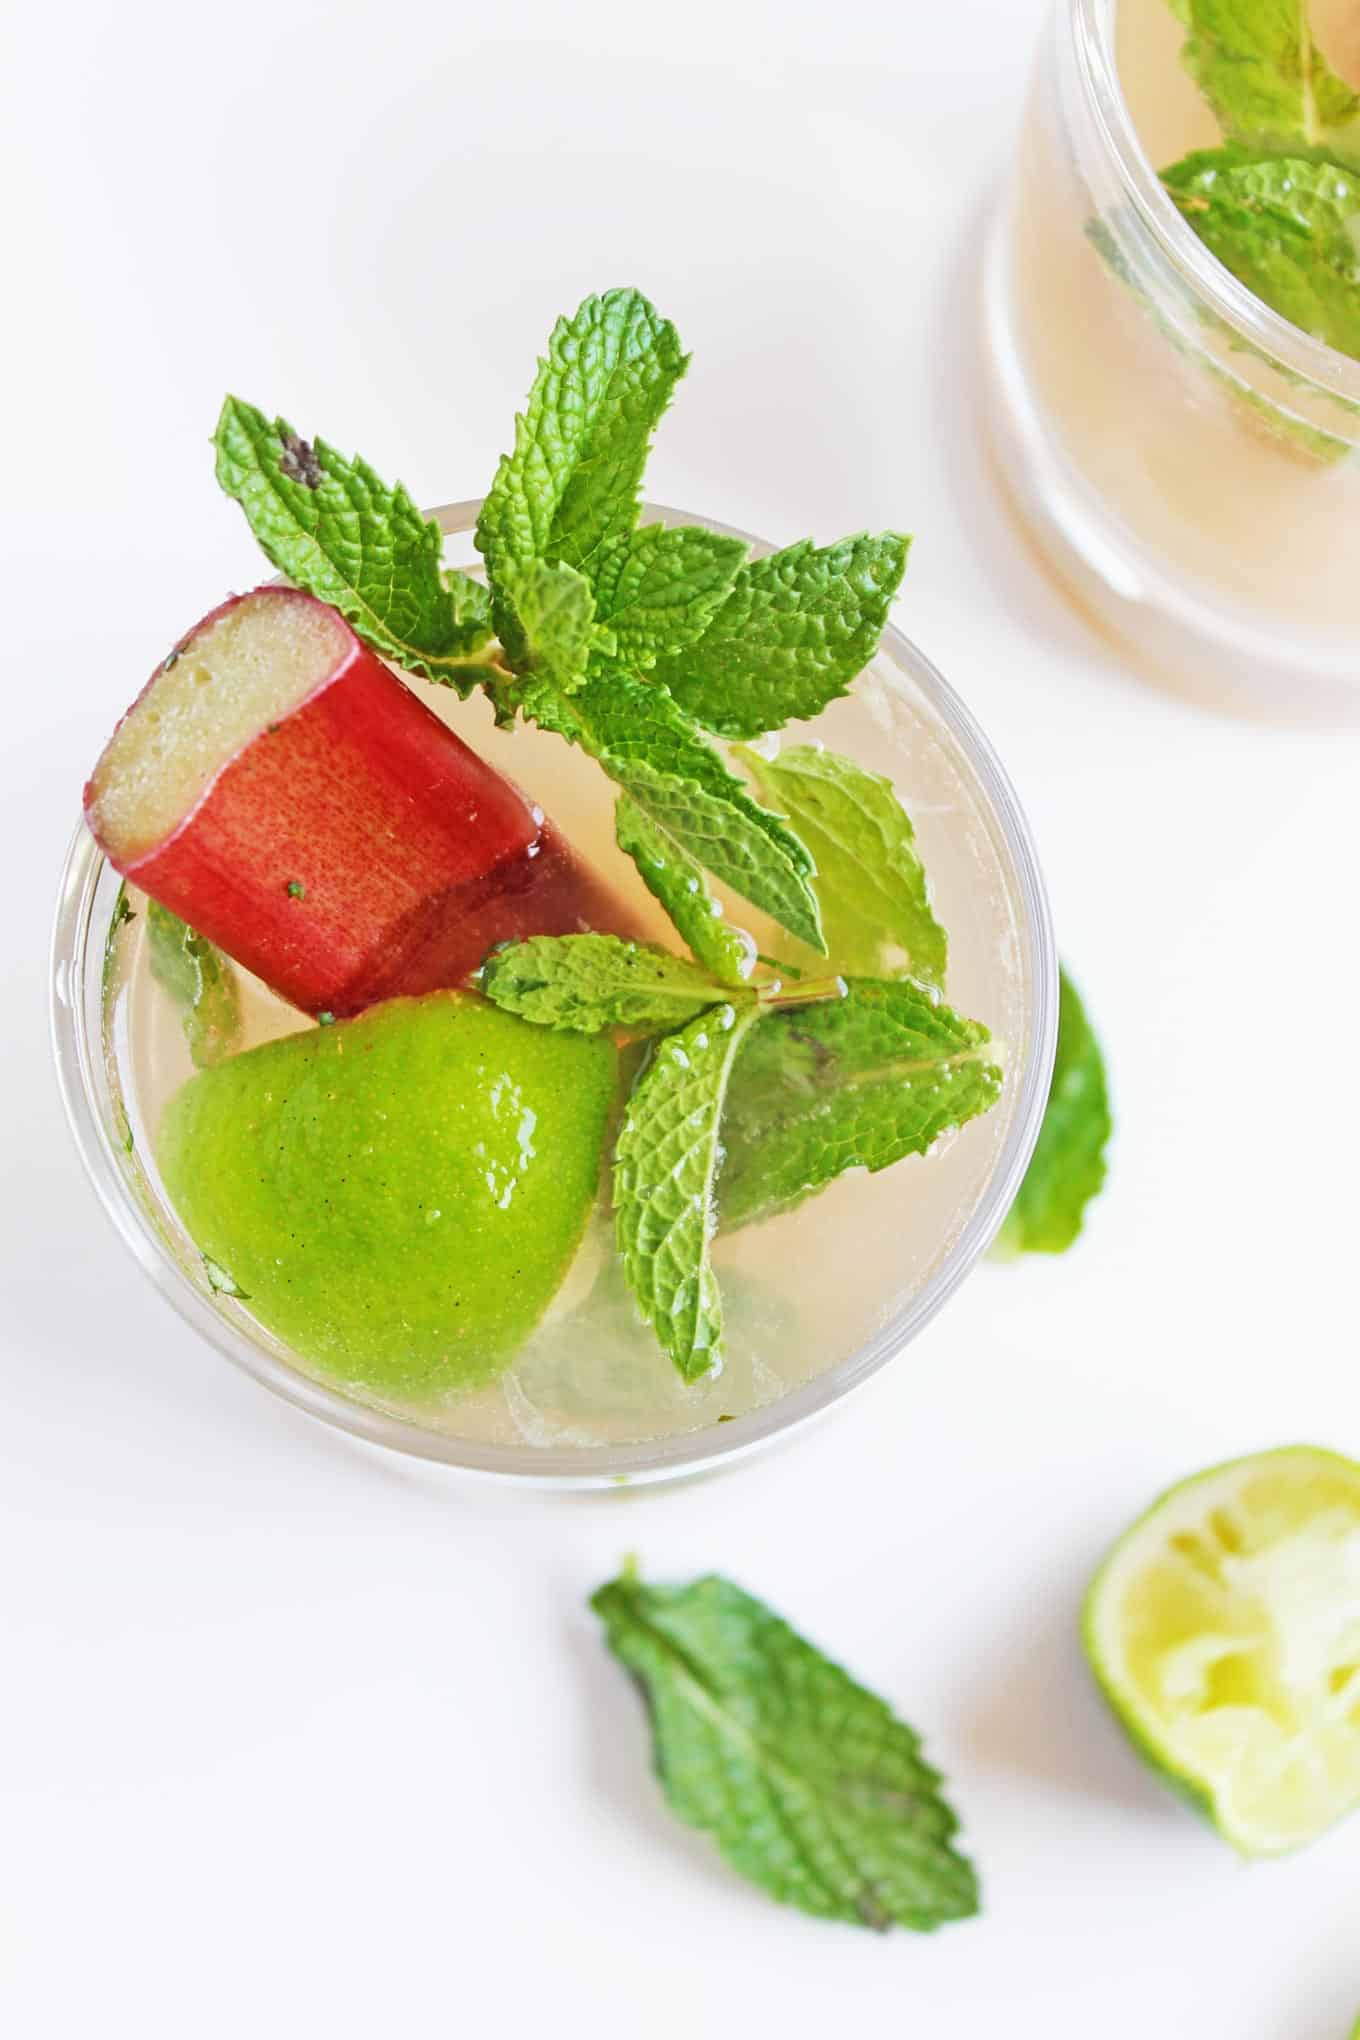 Rhubarb vanilla mojito mocktail recipe! A delicious, alcohol-free twist on the classic mojito cocktail made with YES Beverage's rhubarb vanilla mixer. SO GOOD!